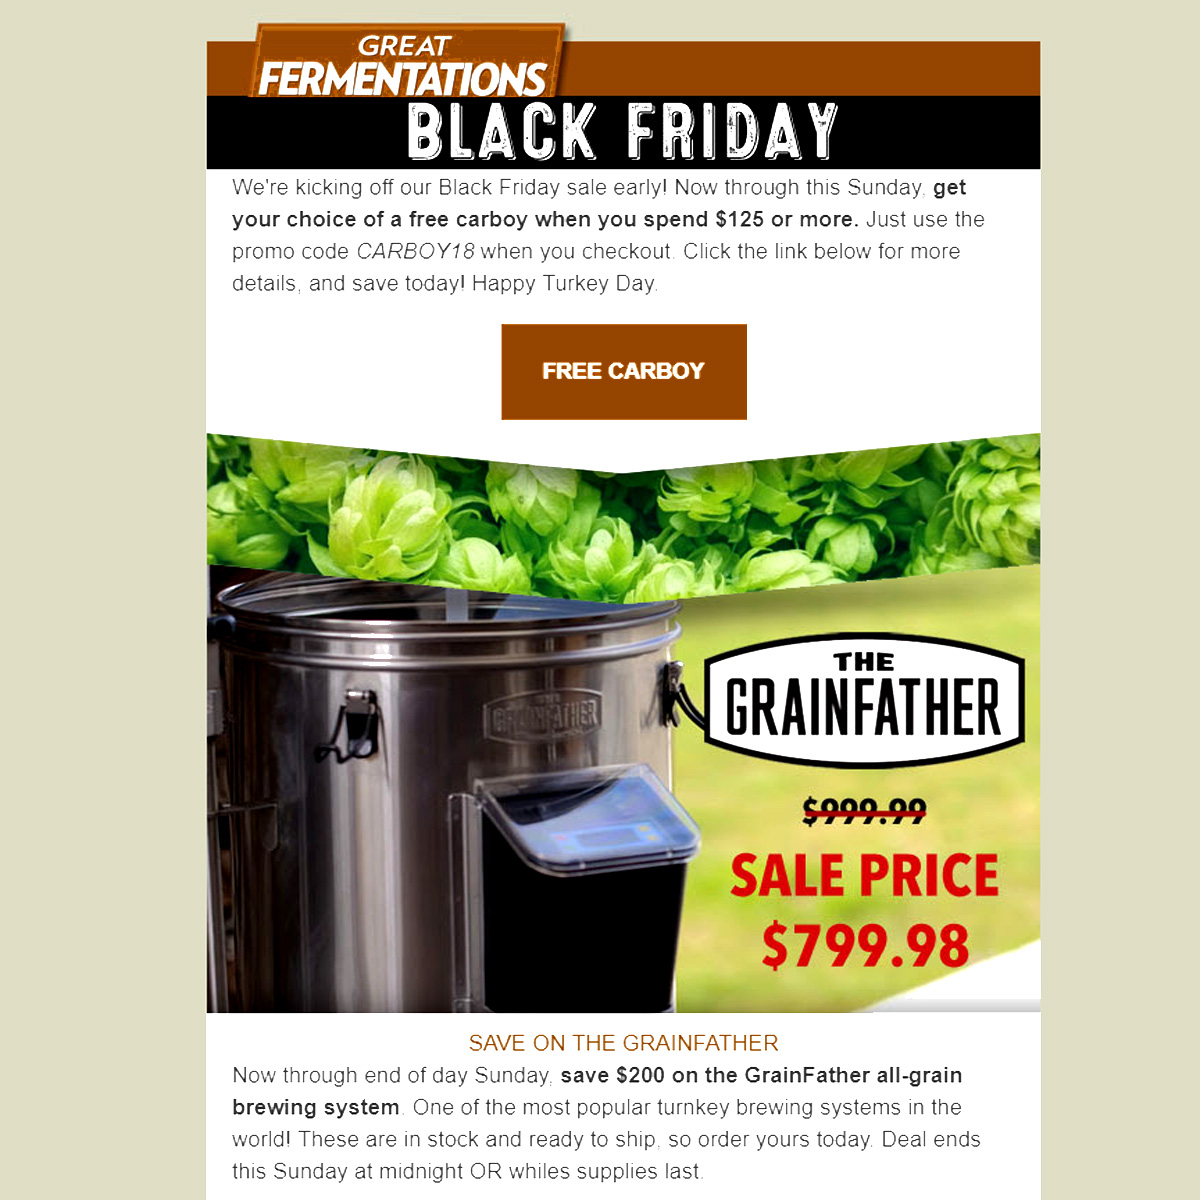 Great Fermentations Save $200 On A Grain Father and Get A FREE Carboy With This Great Fermentations Black Friday Sale Coupon Code